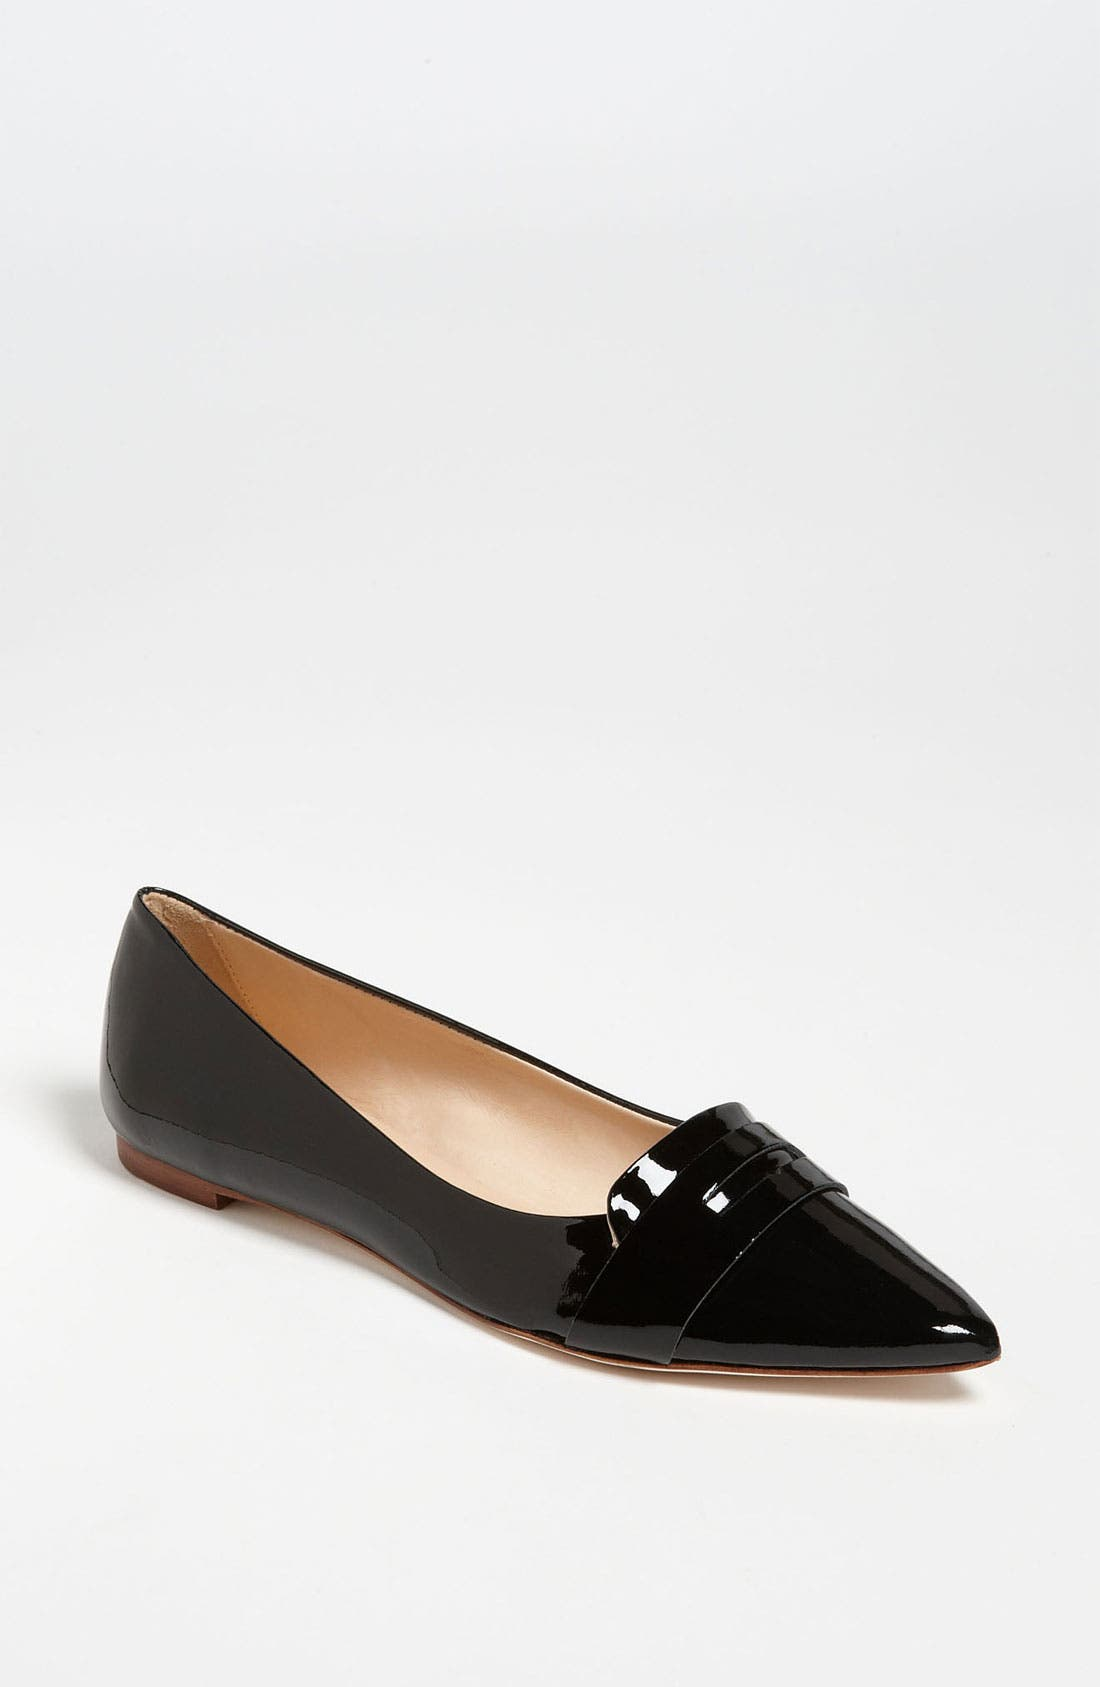 Main Image - kate spade new york 'gwen' flat